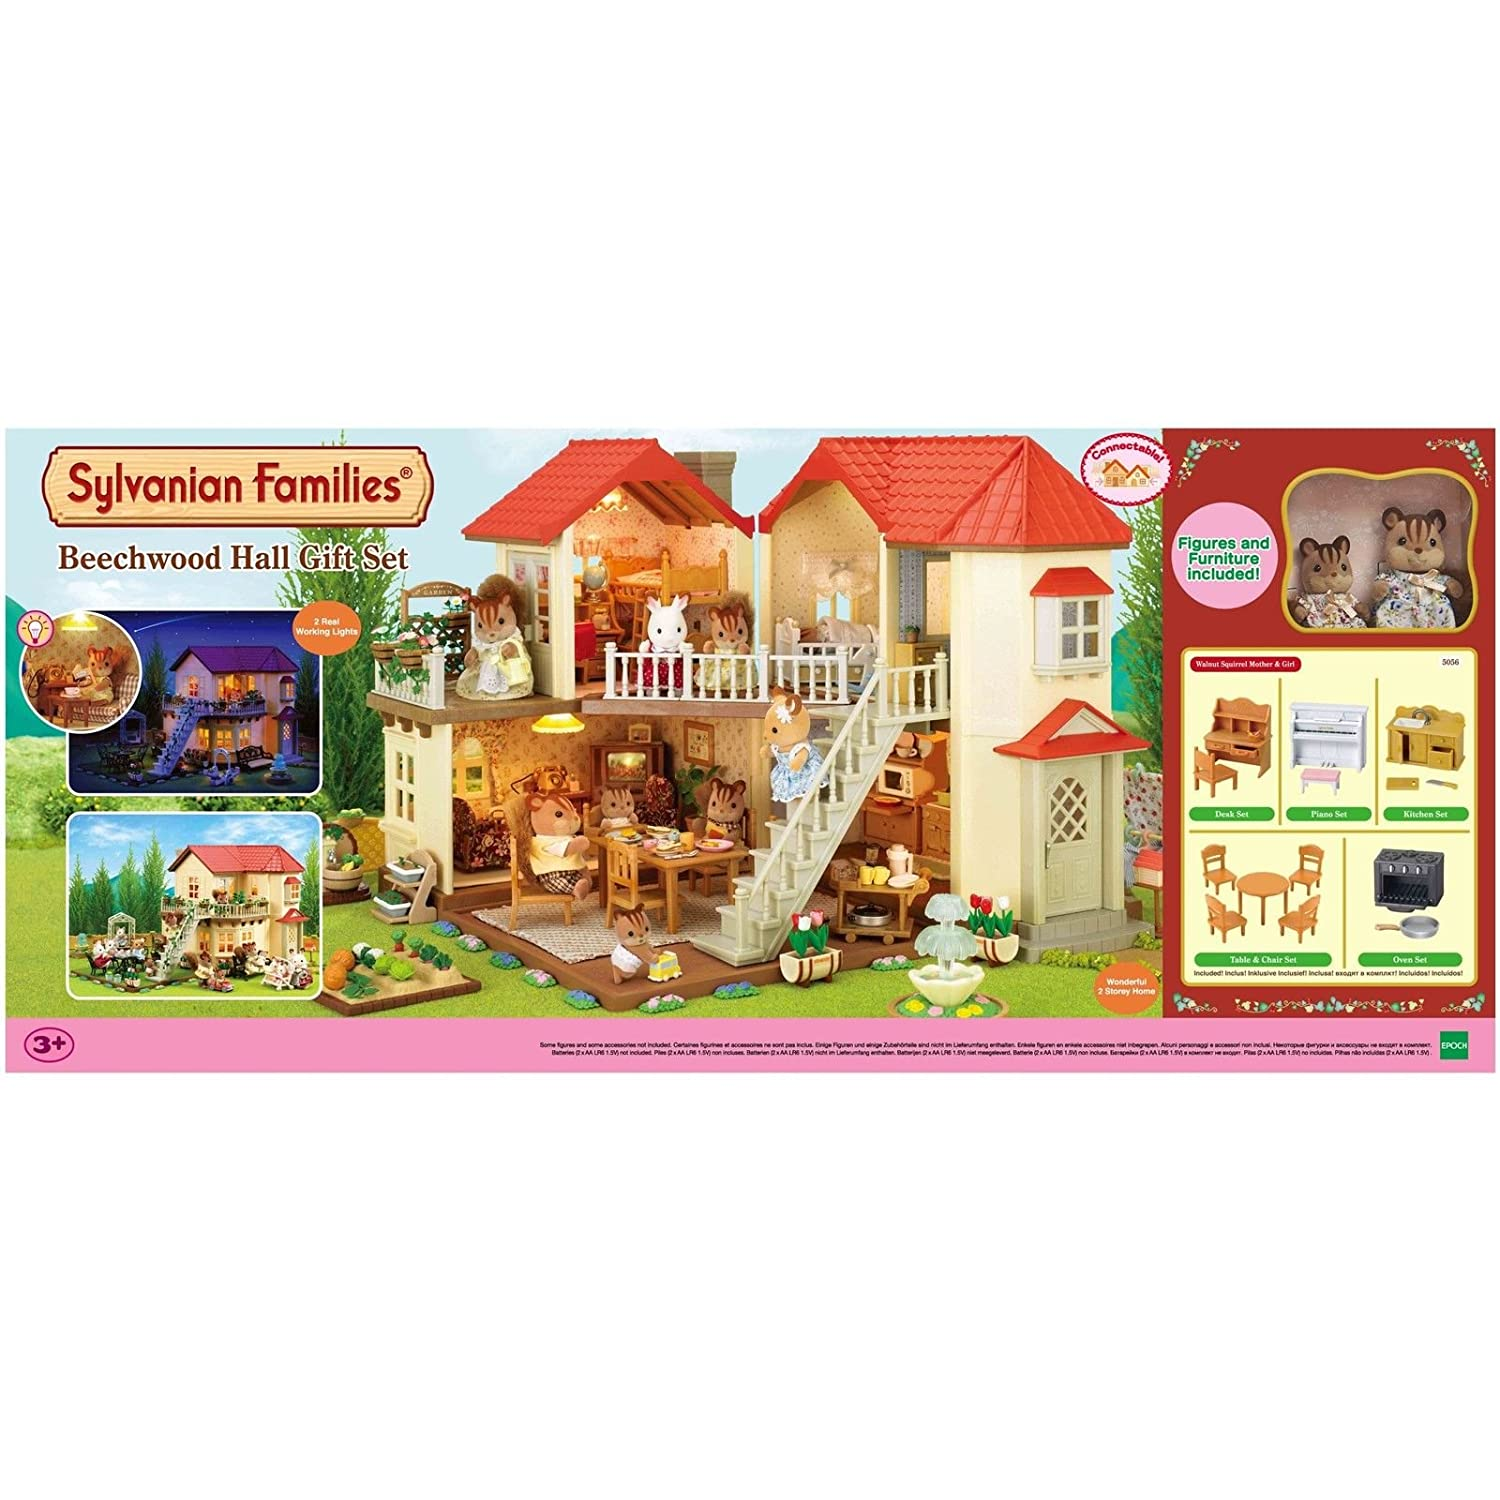 Sylvanian families beechwood hall gift set with figures and furniture 5056 amazon co uk toys games